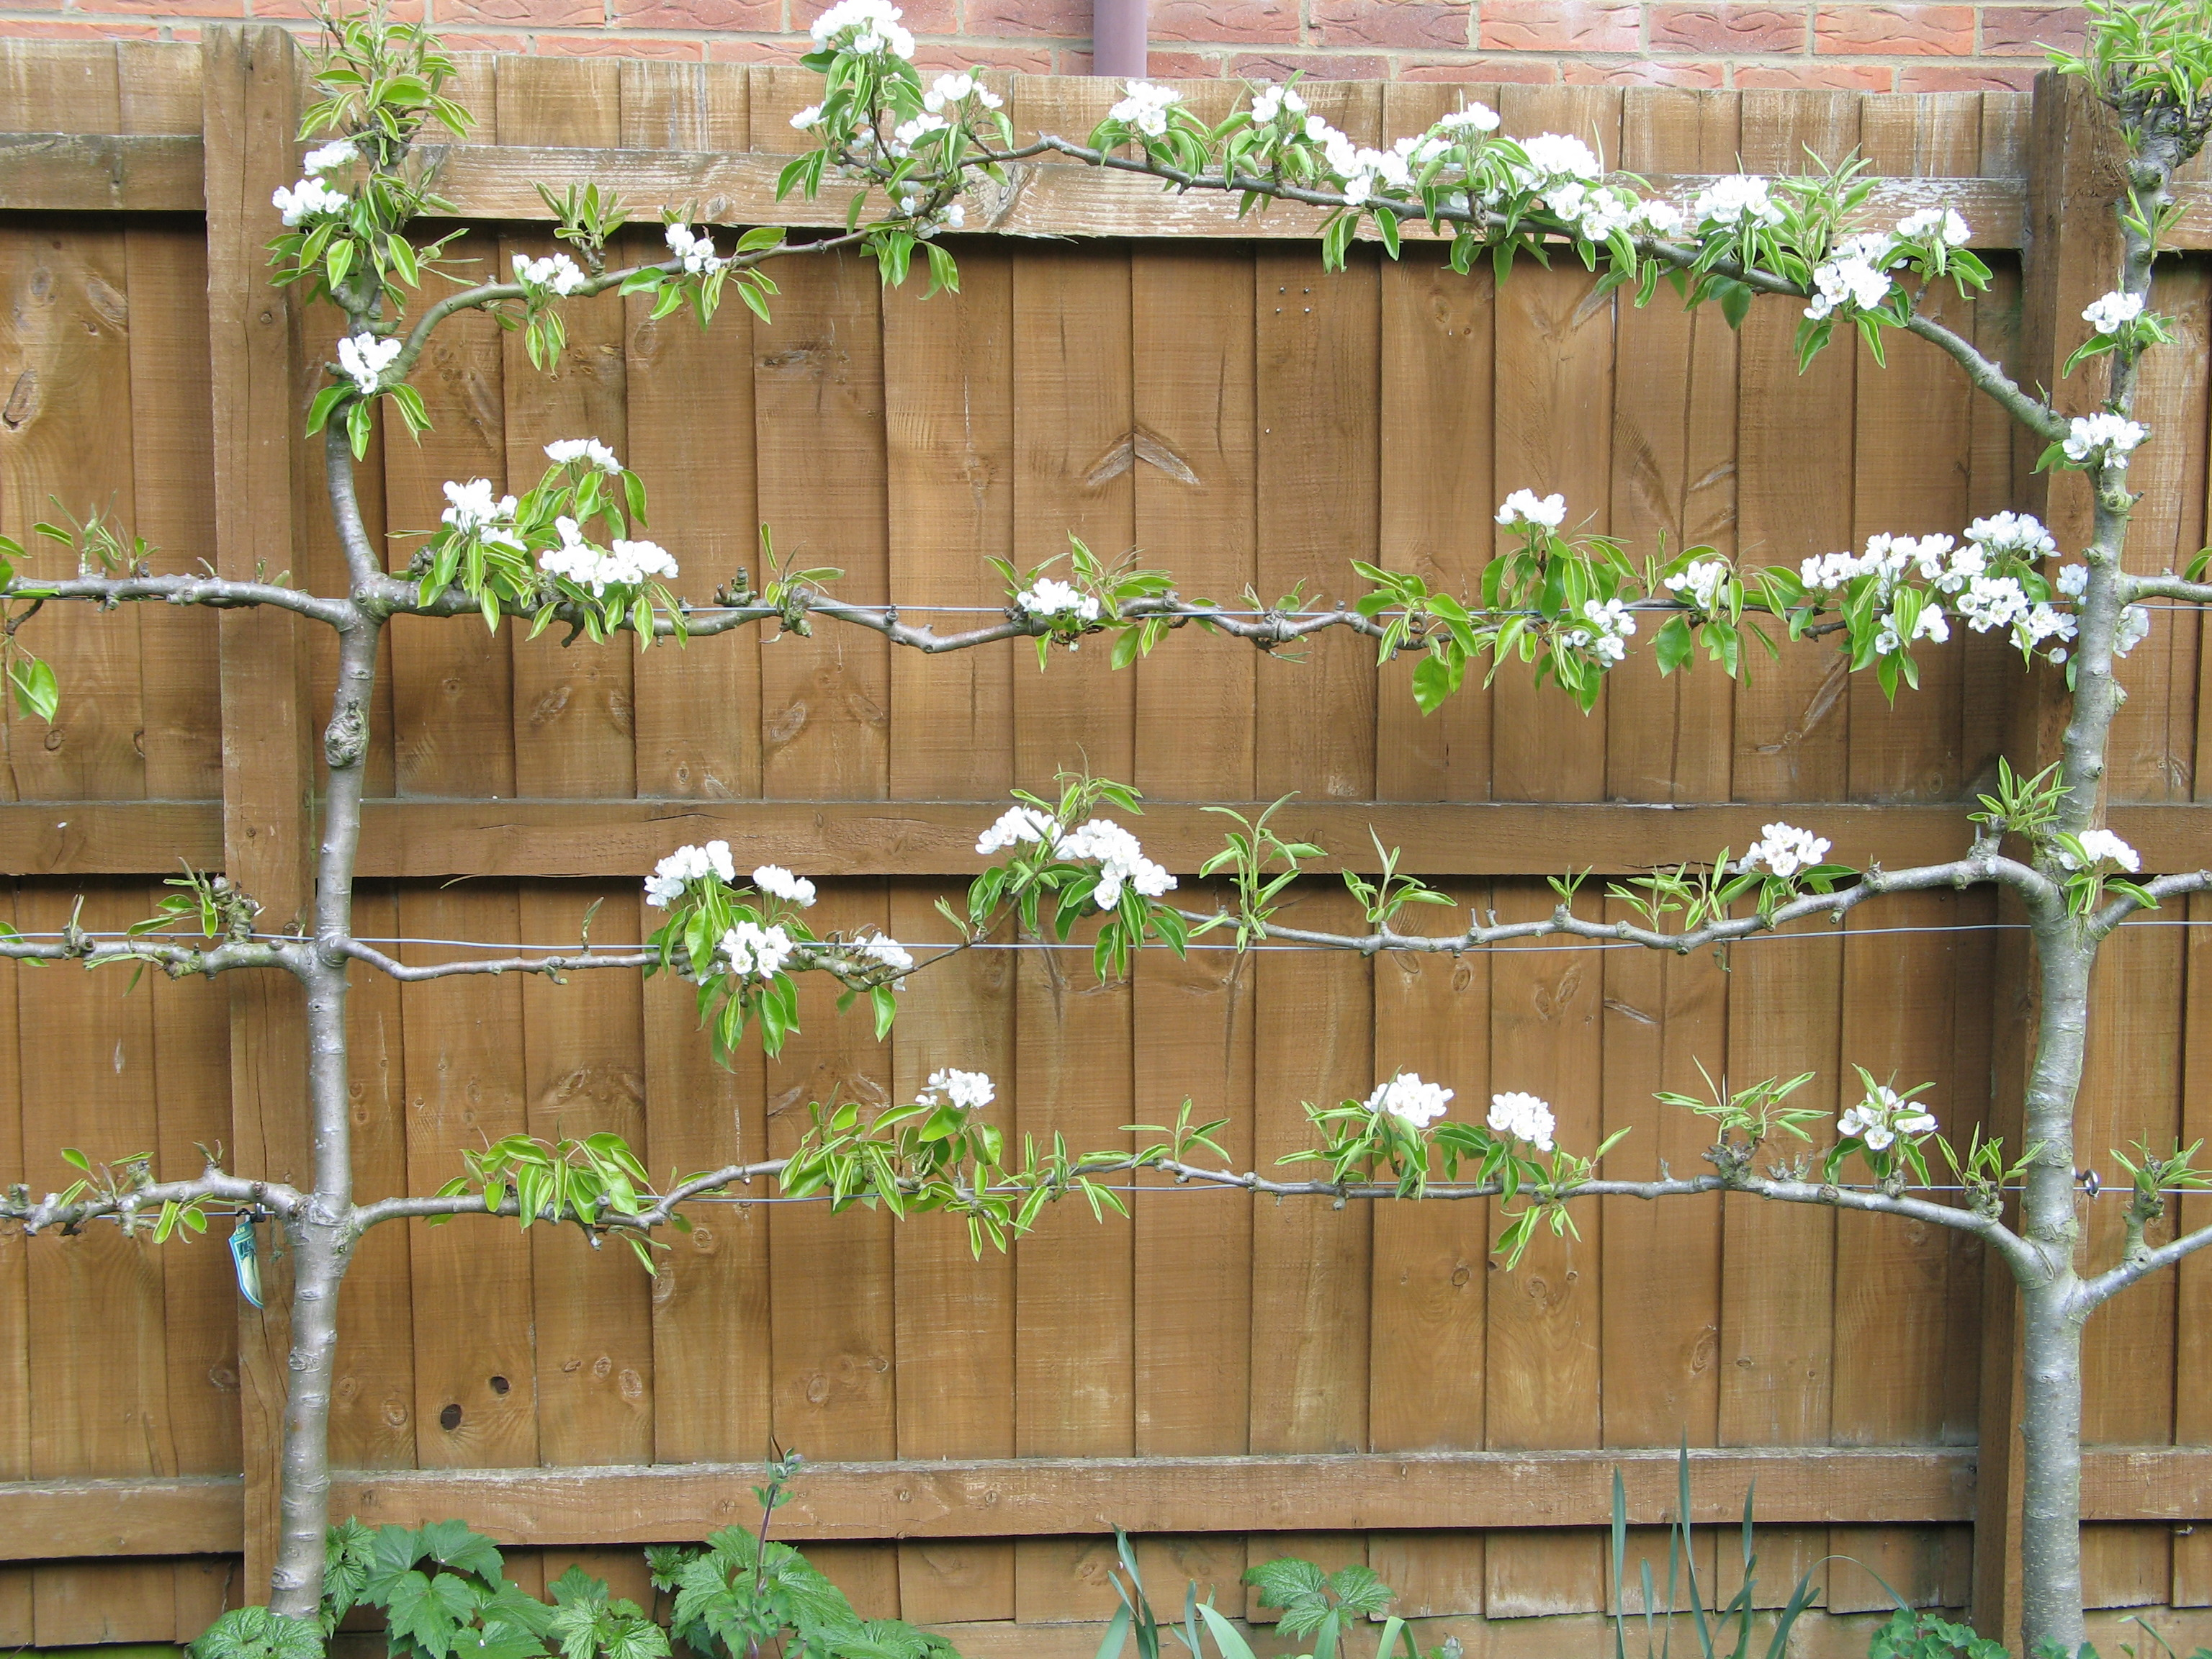 Landscaping With Pear Trees : Fruit trees for small gardens karen tizzard garden design